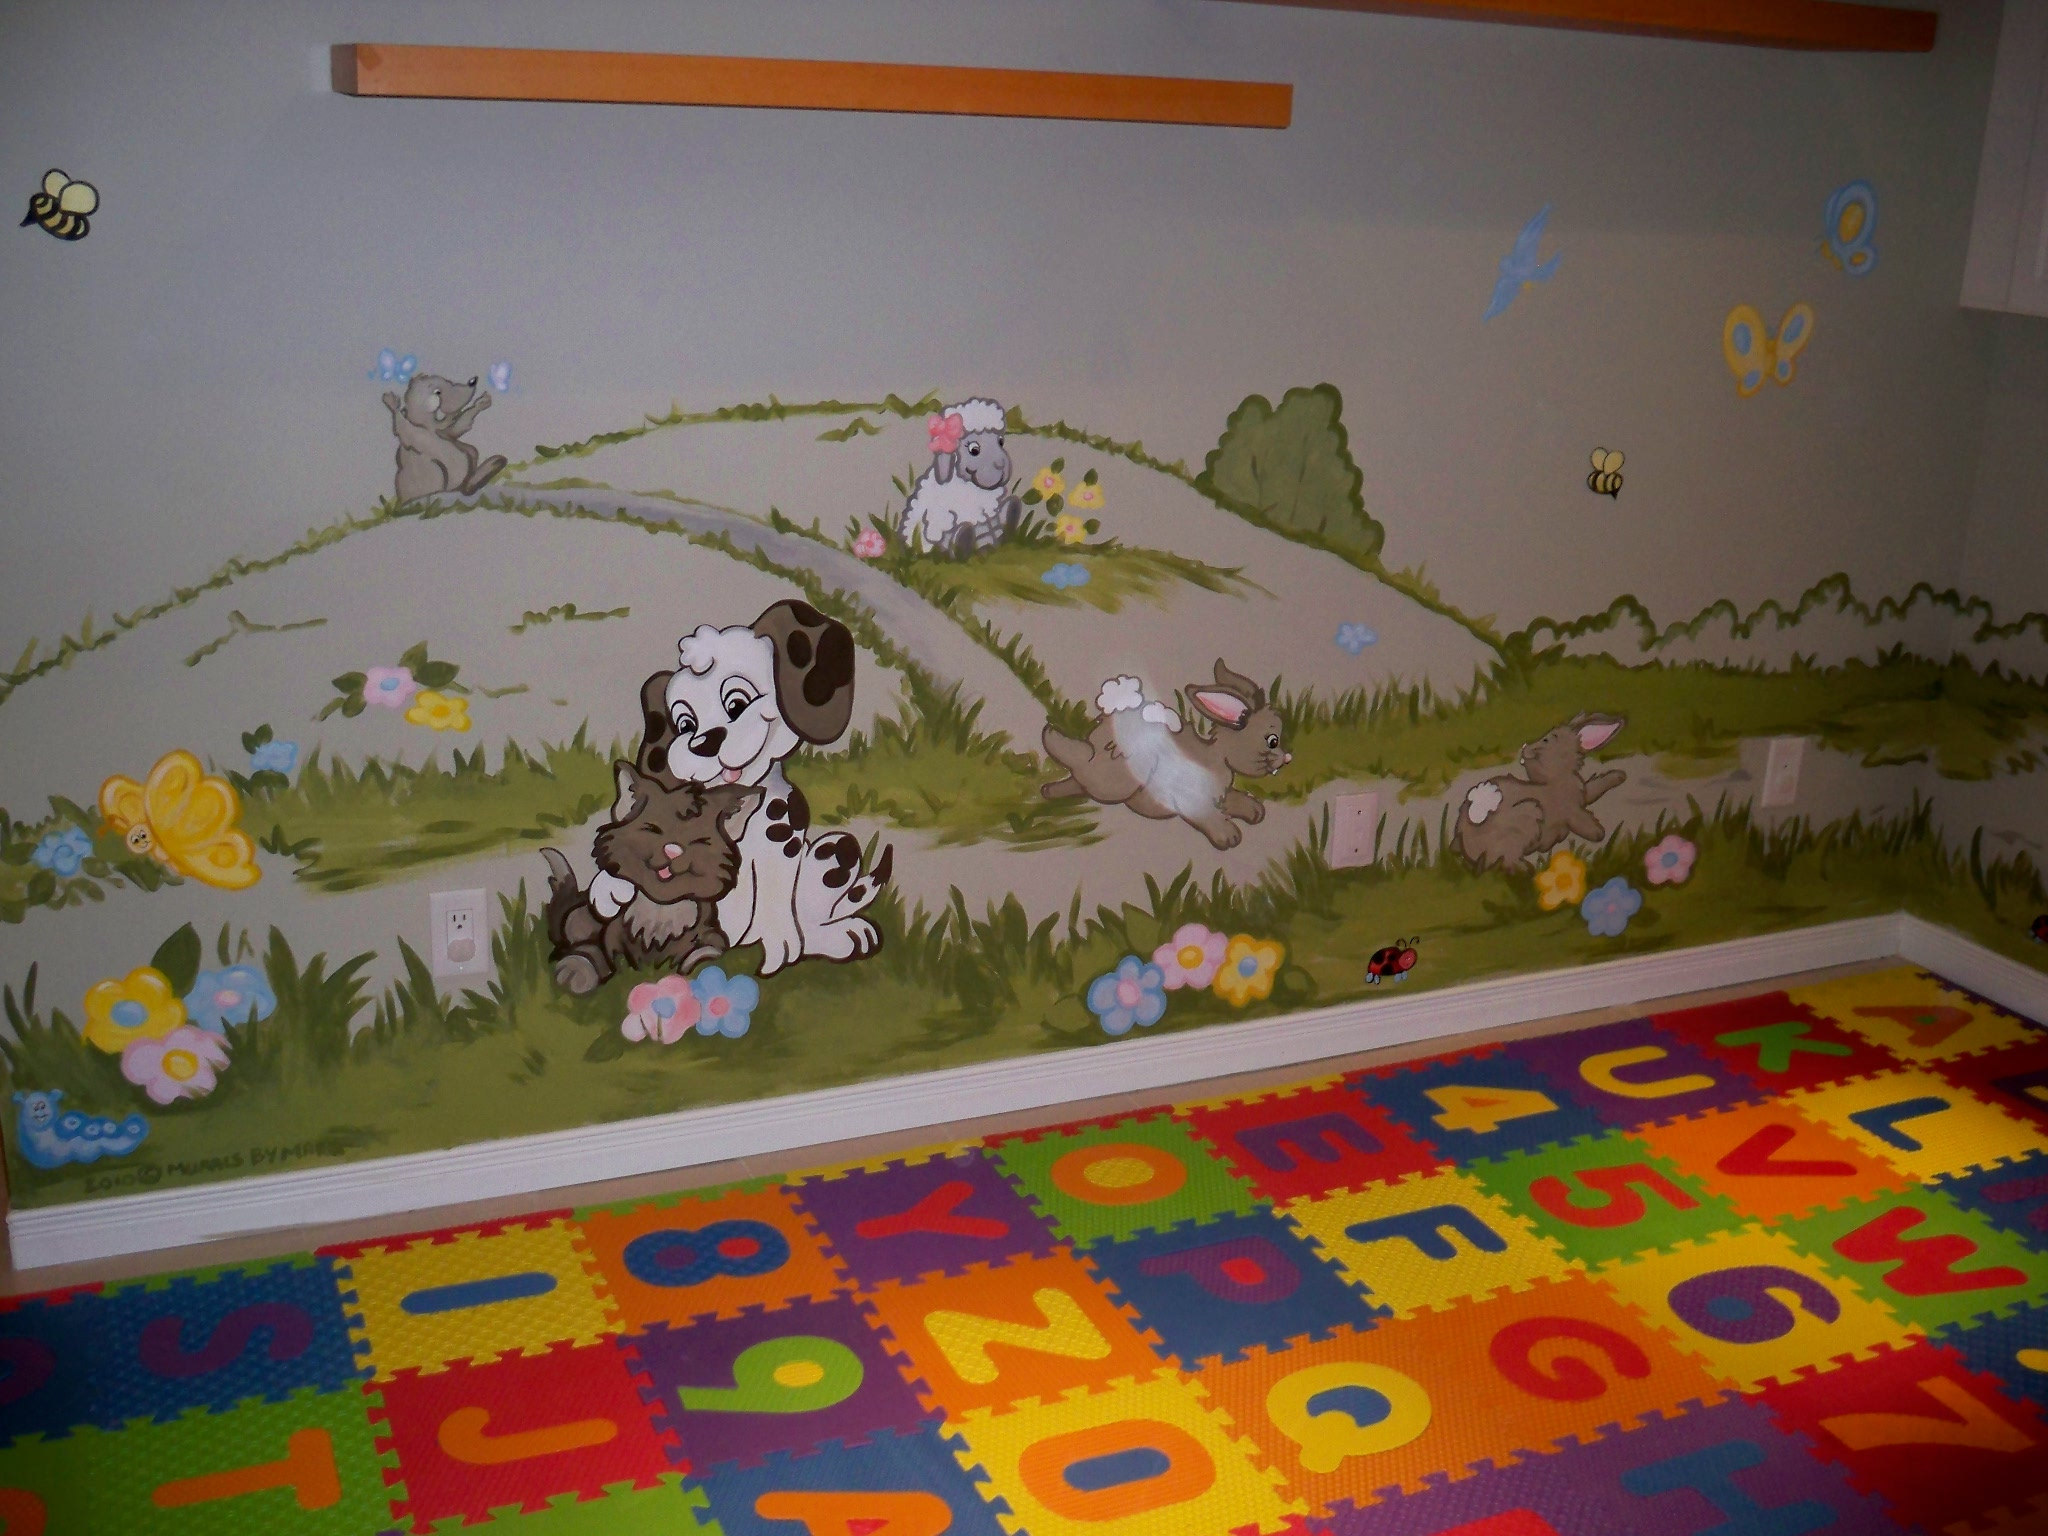 Murals By Marg Genevieve's Playroom Mural 2.JPG